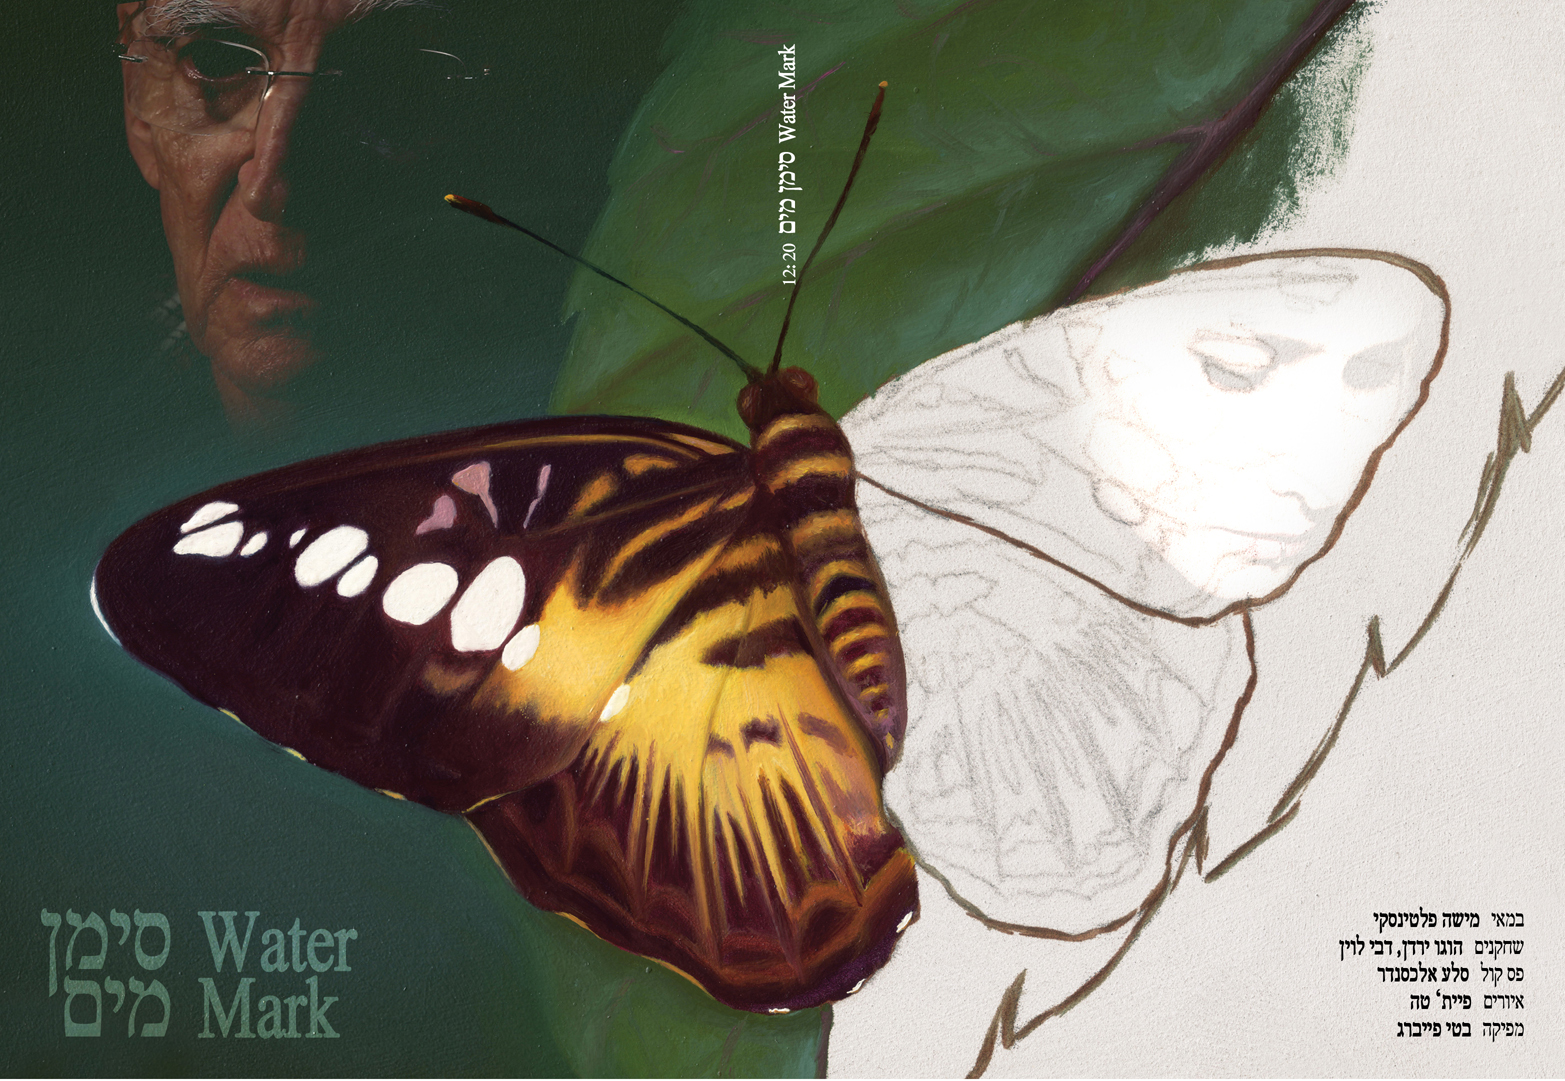 Watermark DVD cover